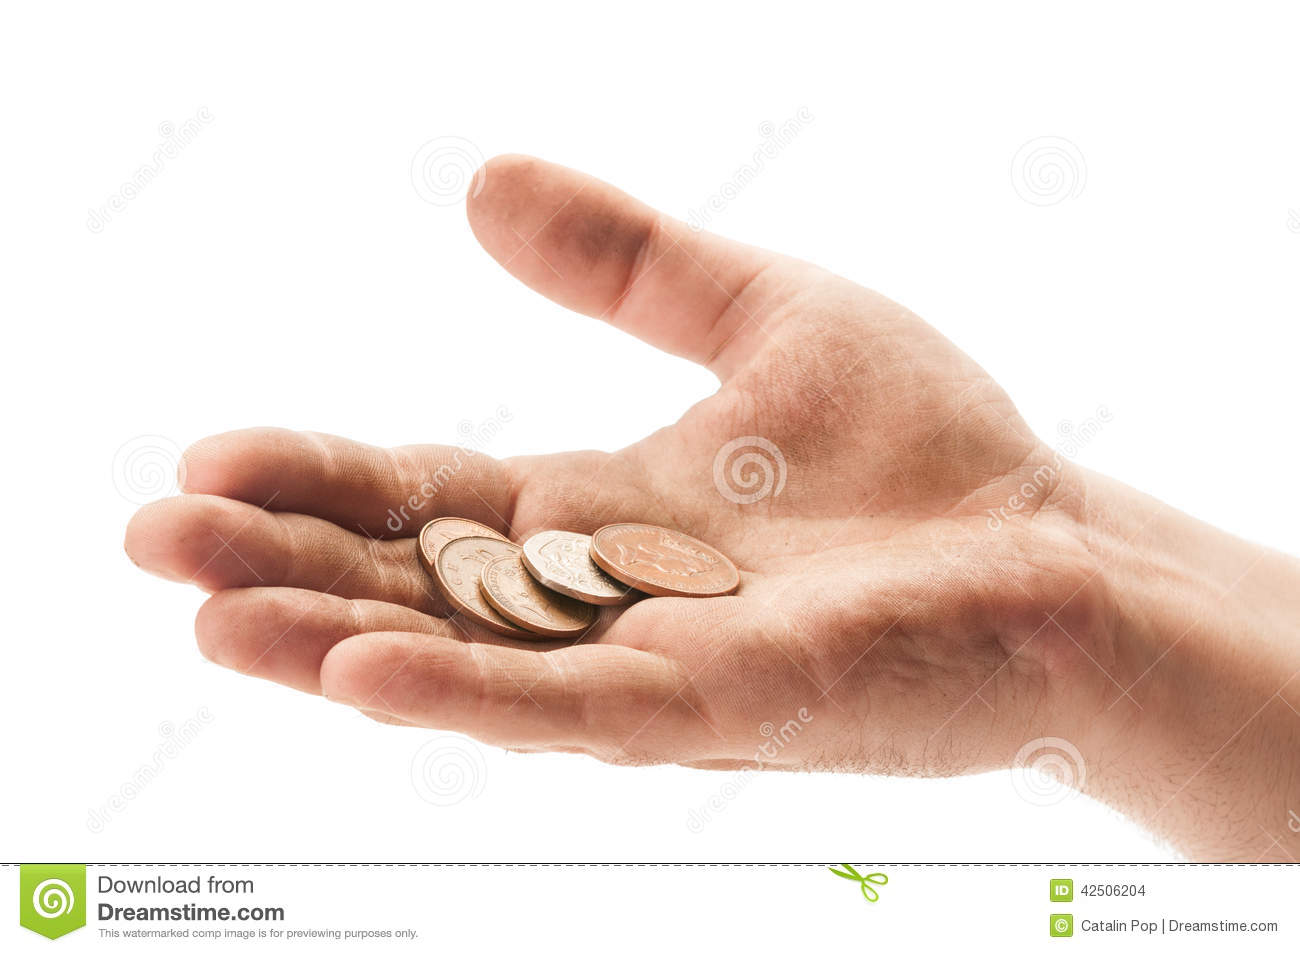 Beggar Hand With England Coins Stock Photo - Image: 42506204  Beggar Hand Wit...